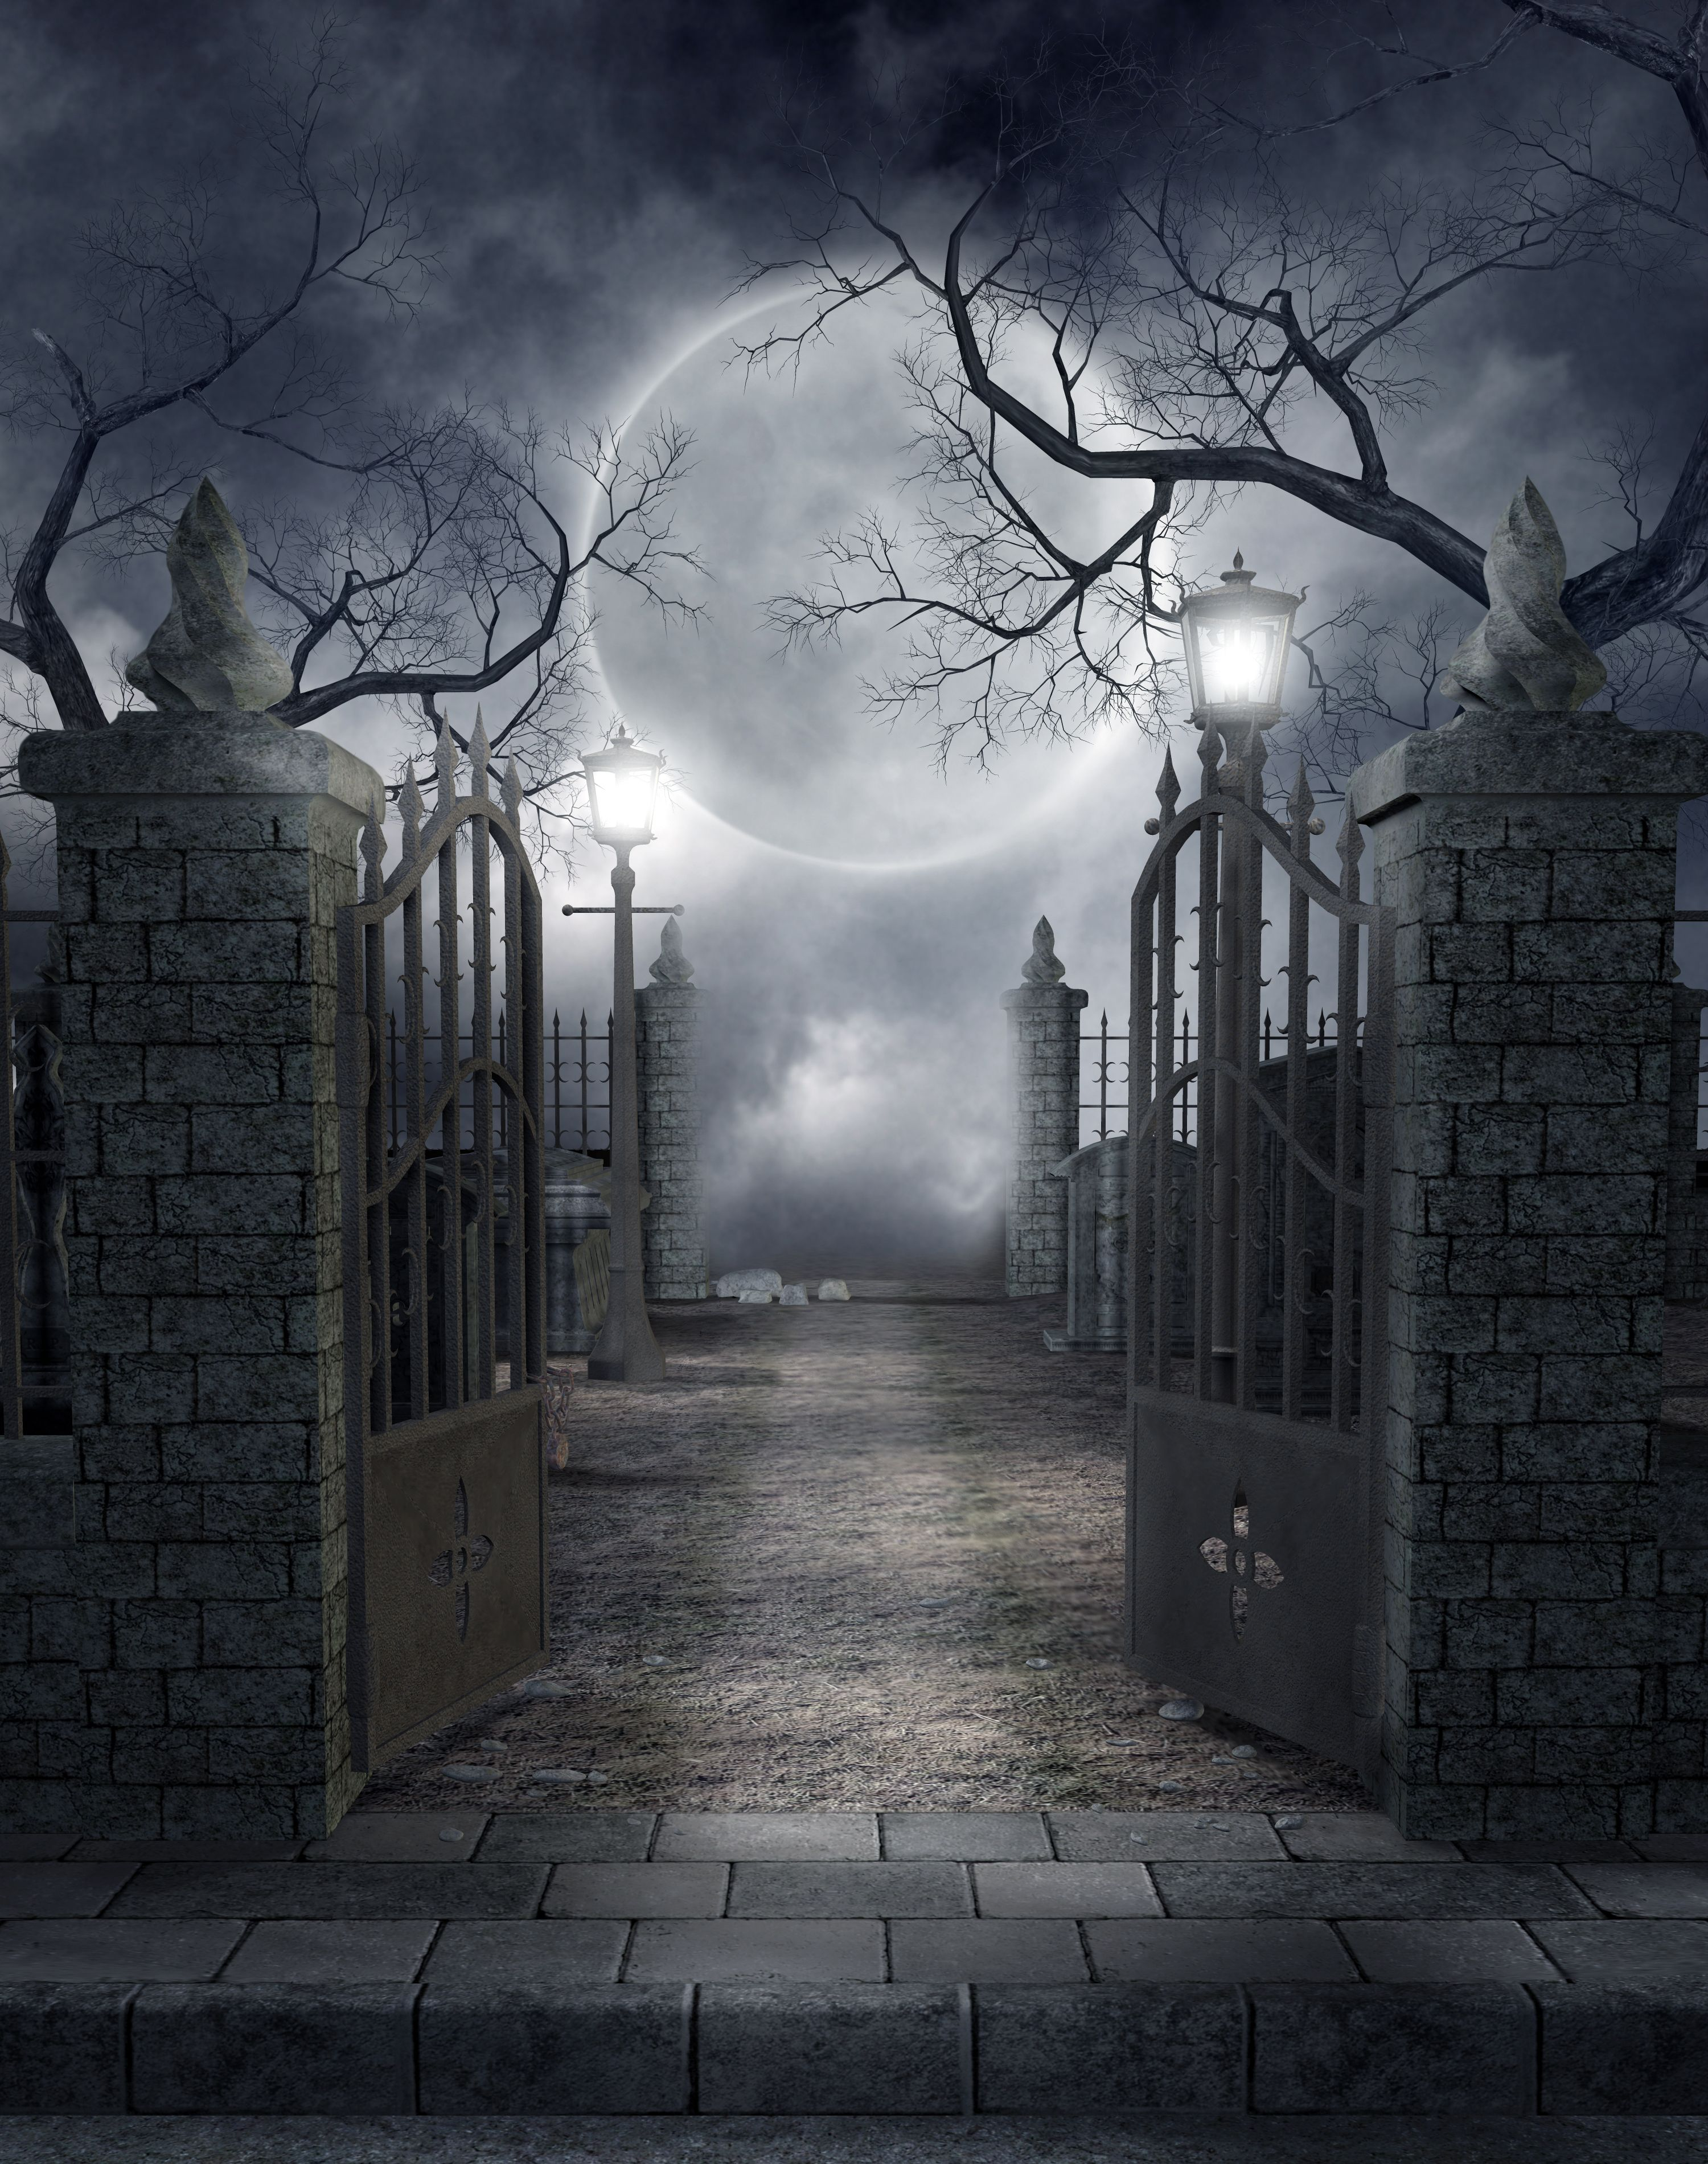 Graveyard clipart creepy graveyard. Cemetery to scary at